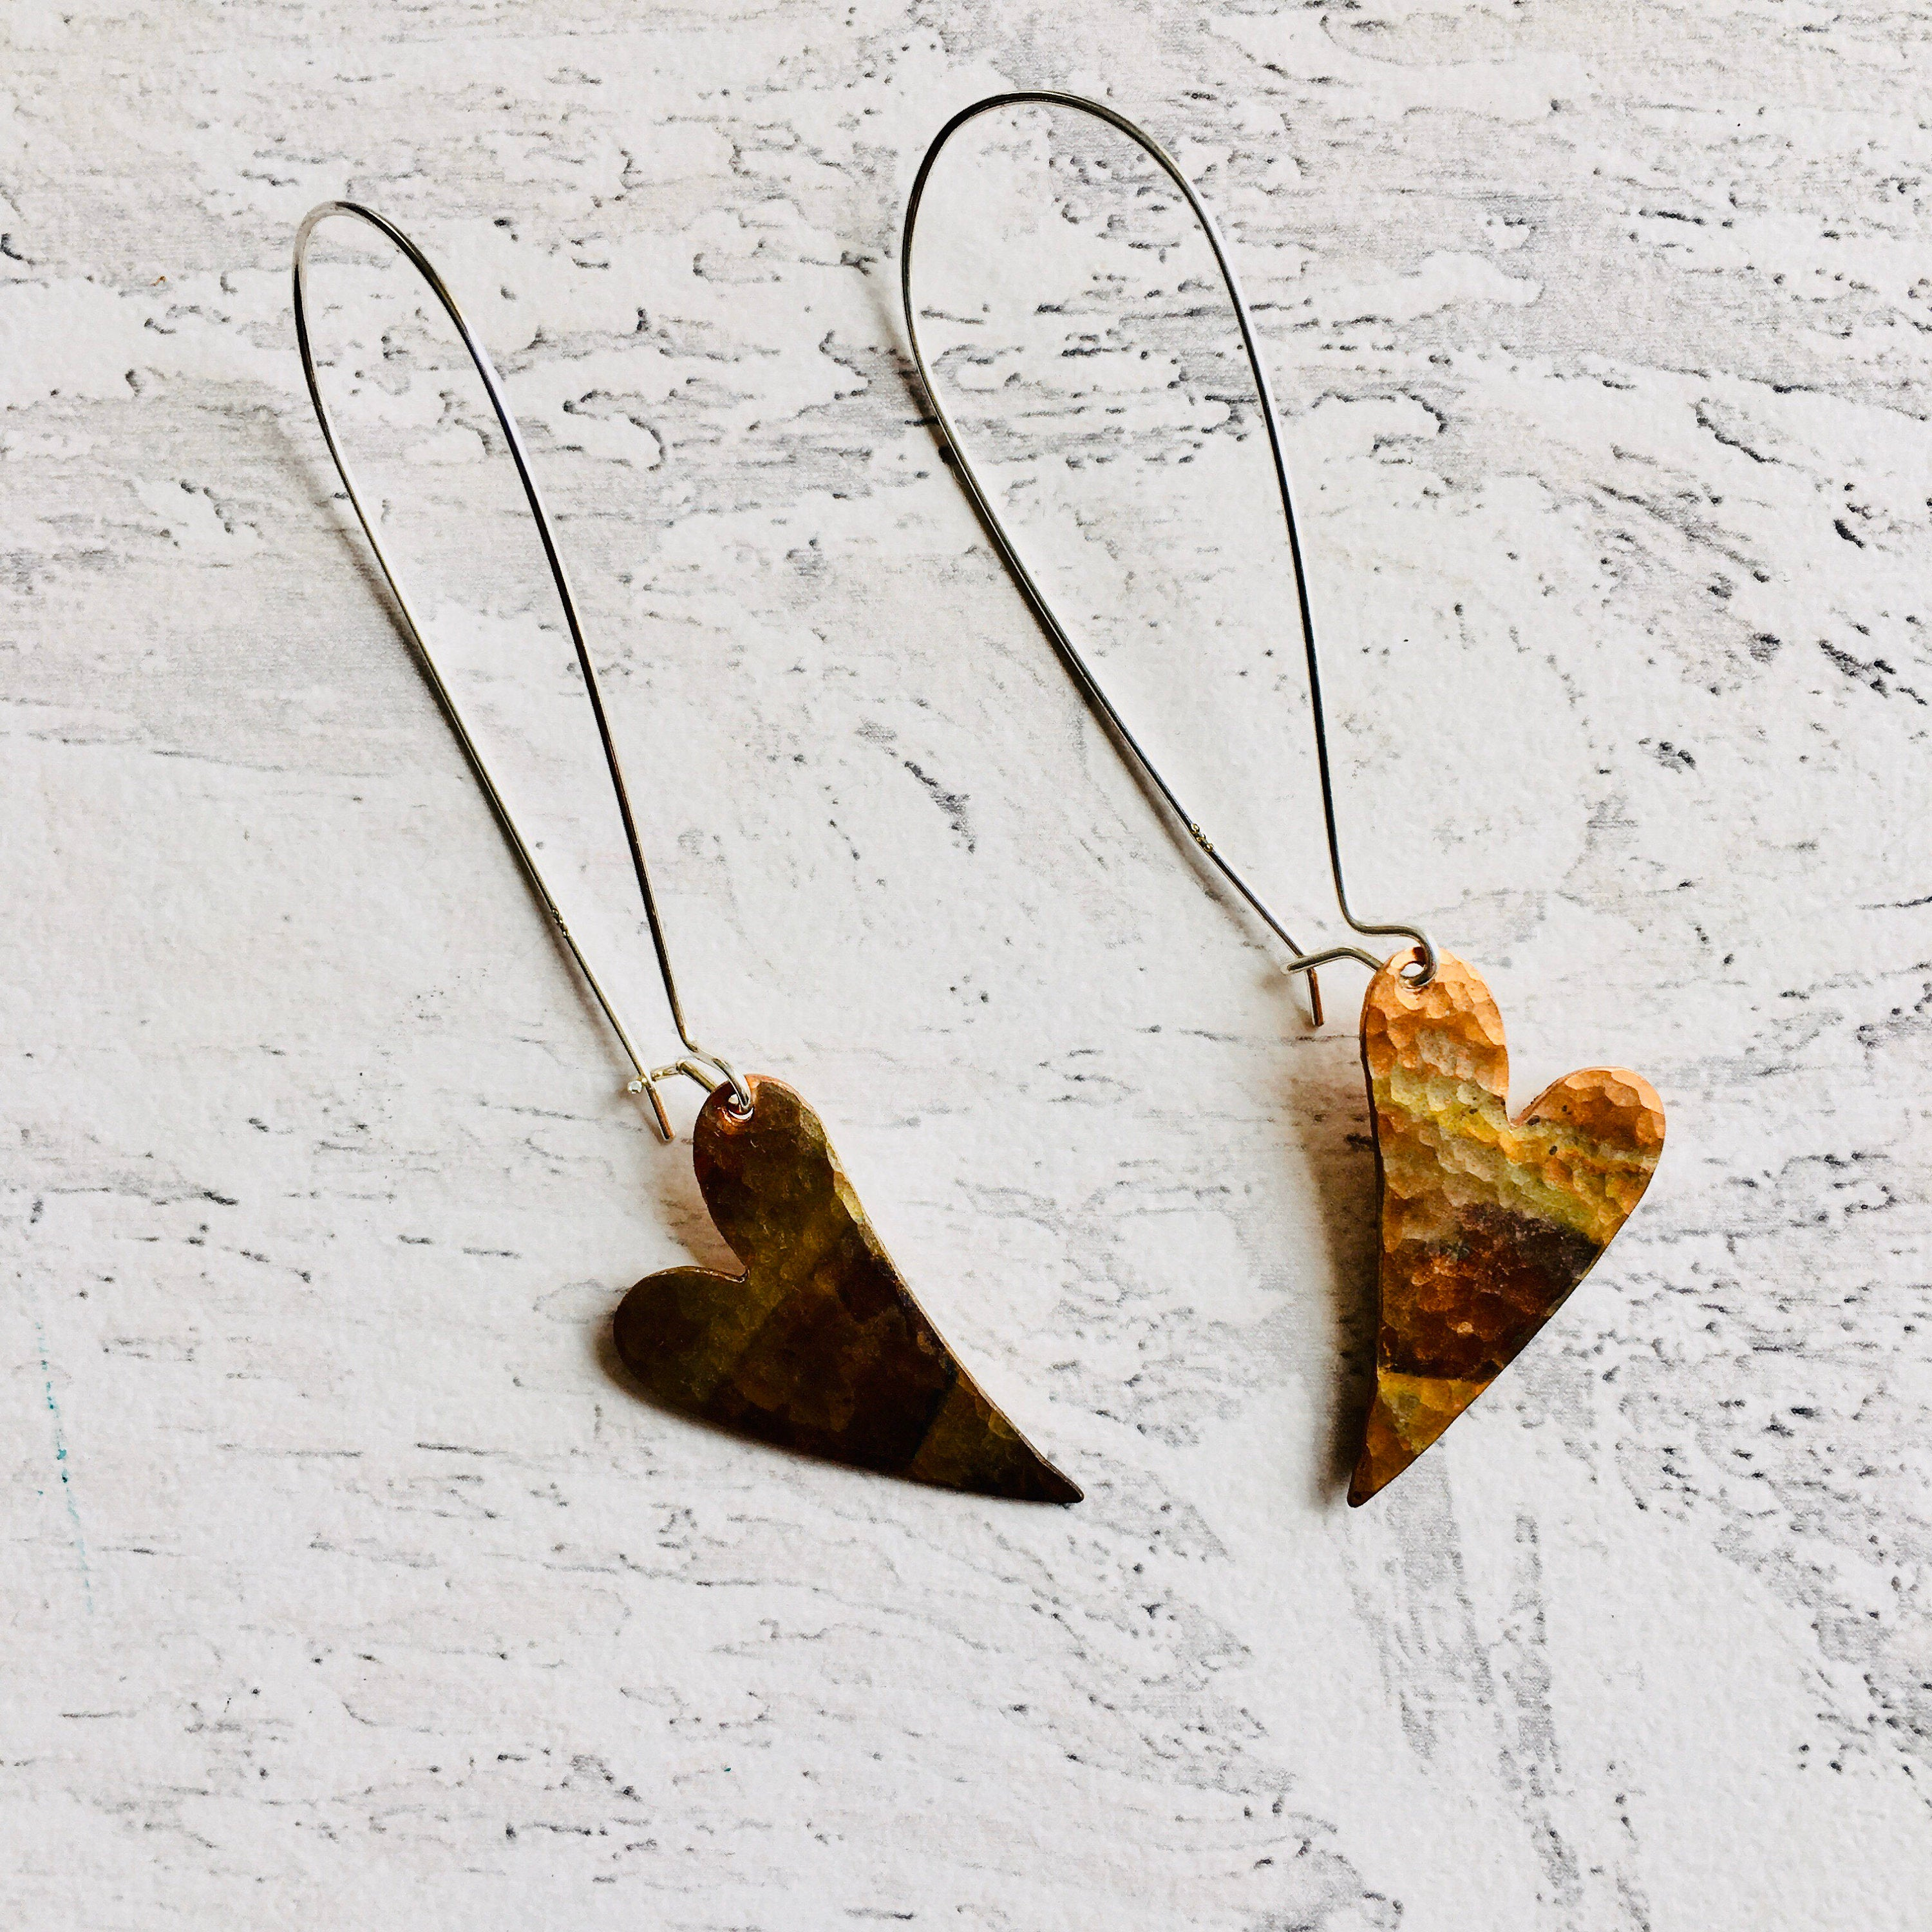 Heart Earrings with sterling silver ear findings. Each earring patinated using the flame of a torch.